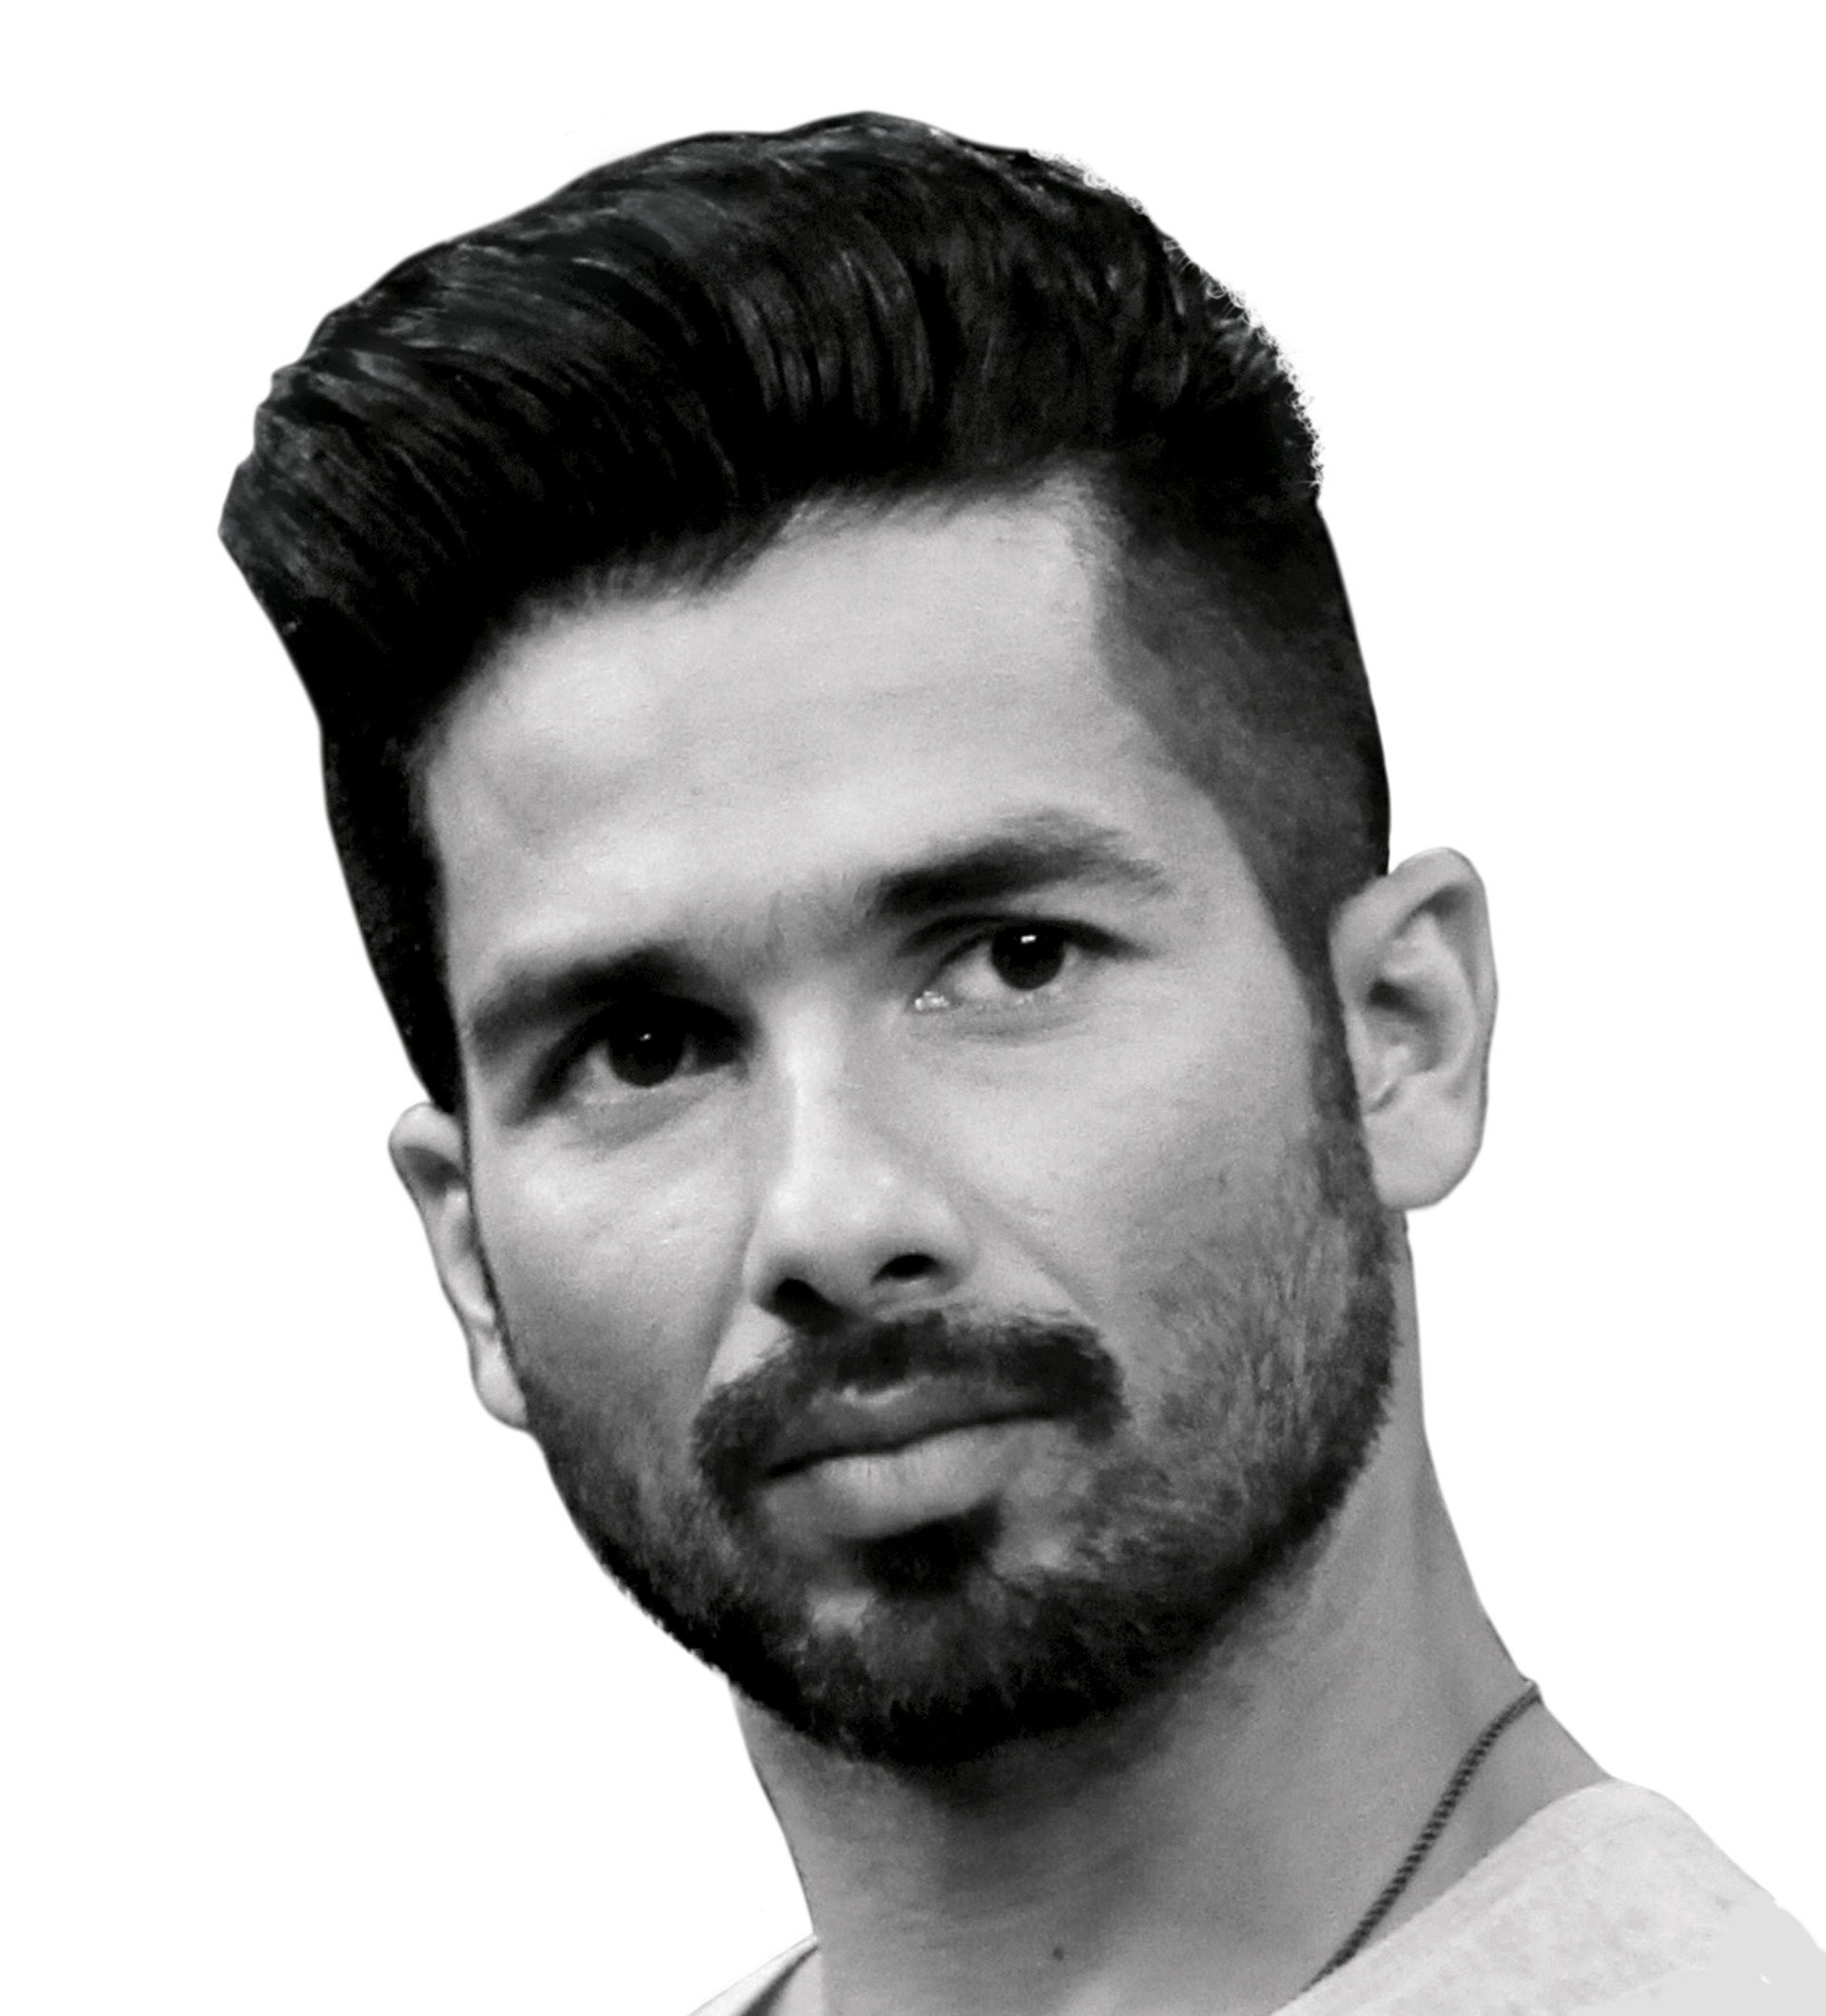 Indian men haircut super beste frisuren für männer  hair  pinterest  hair styles